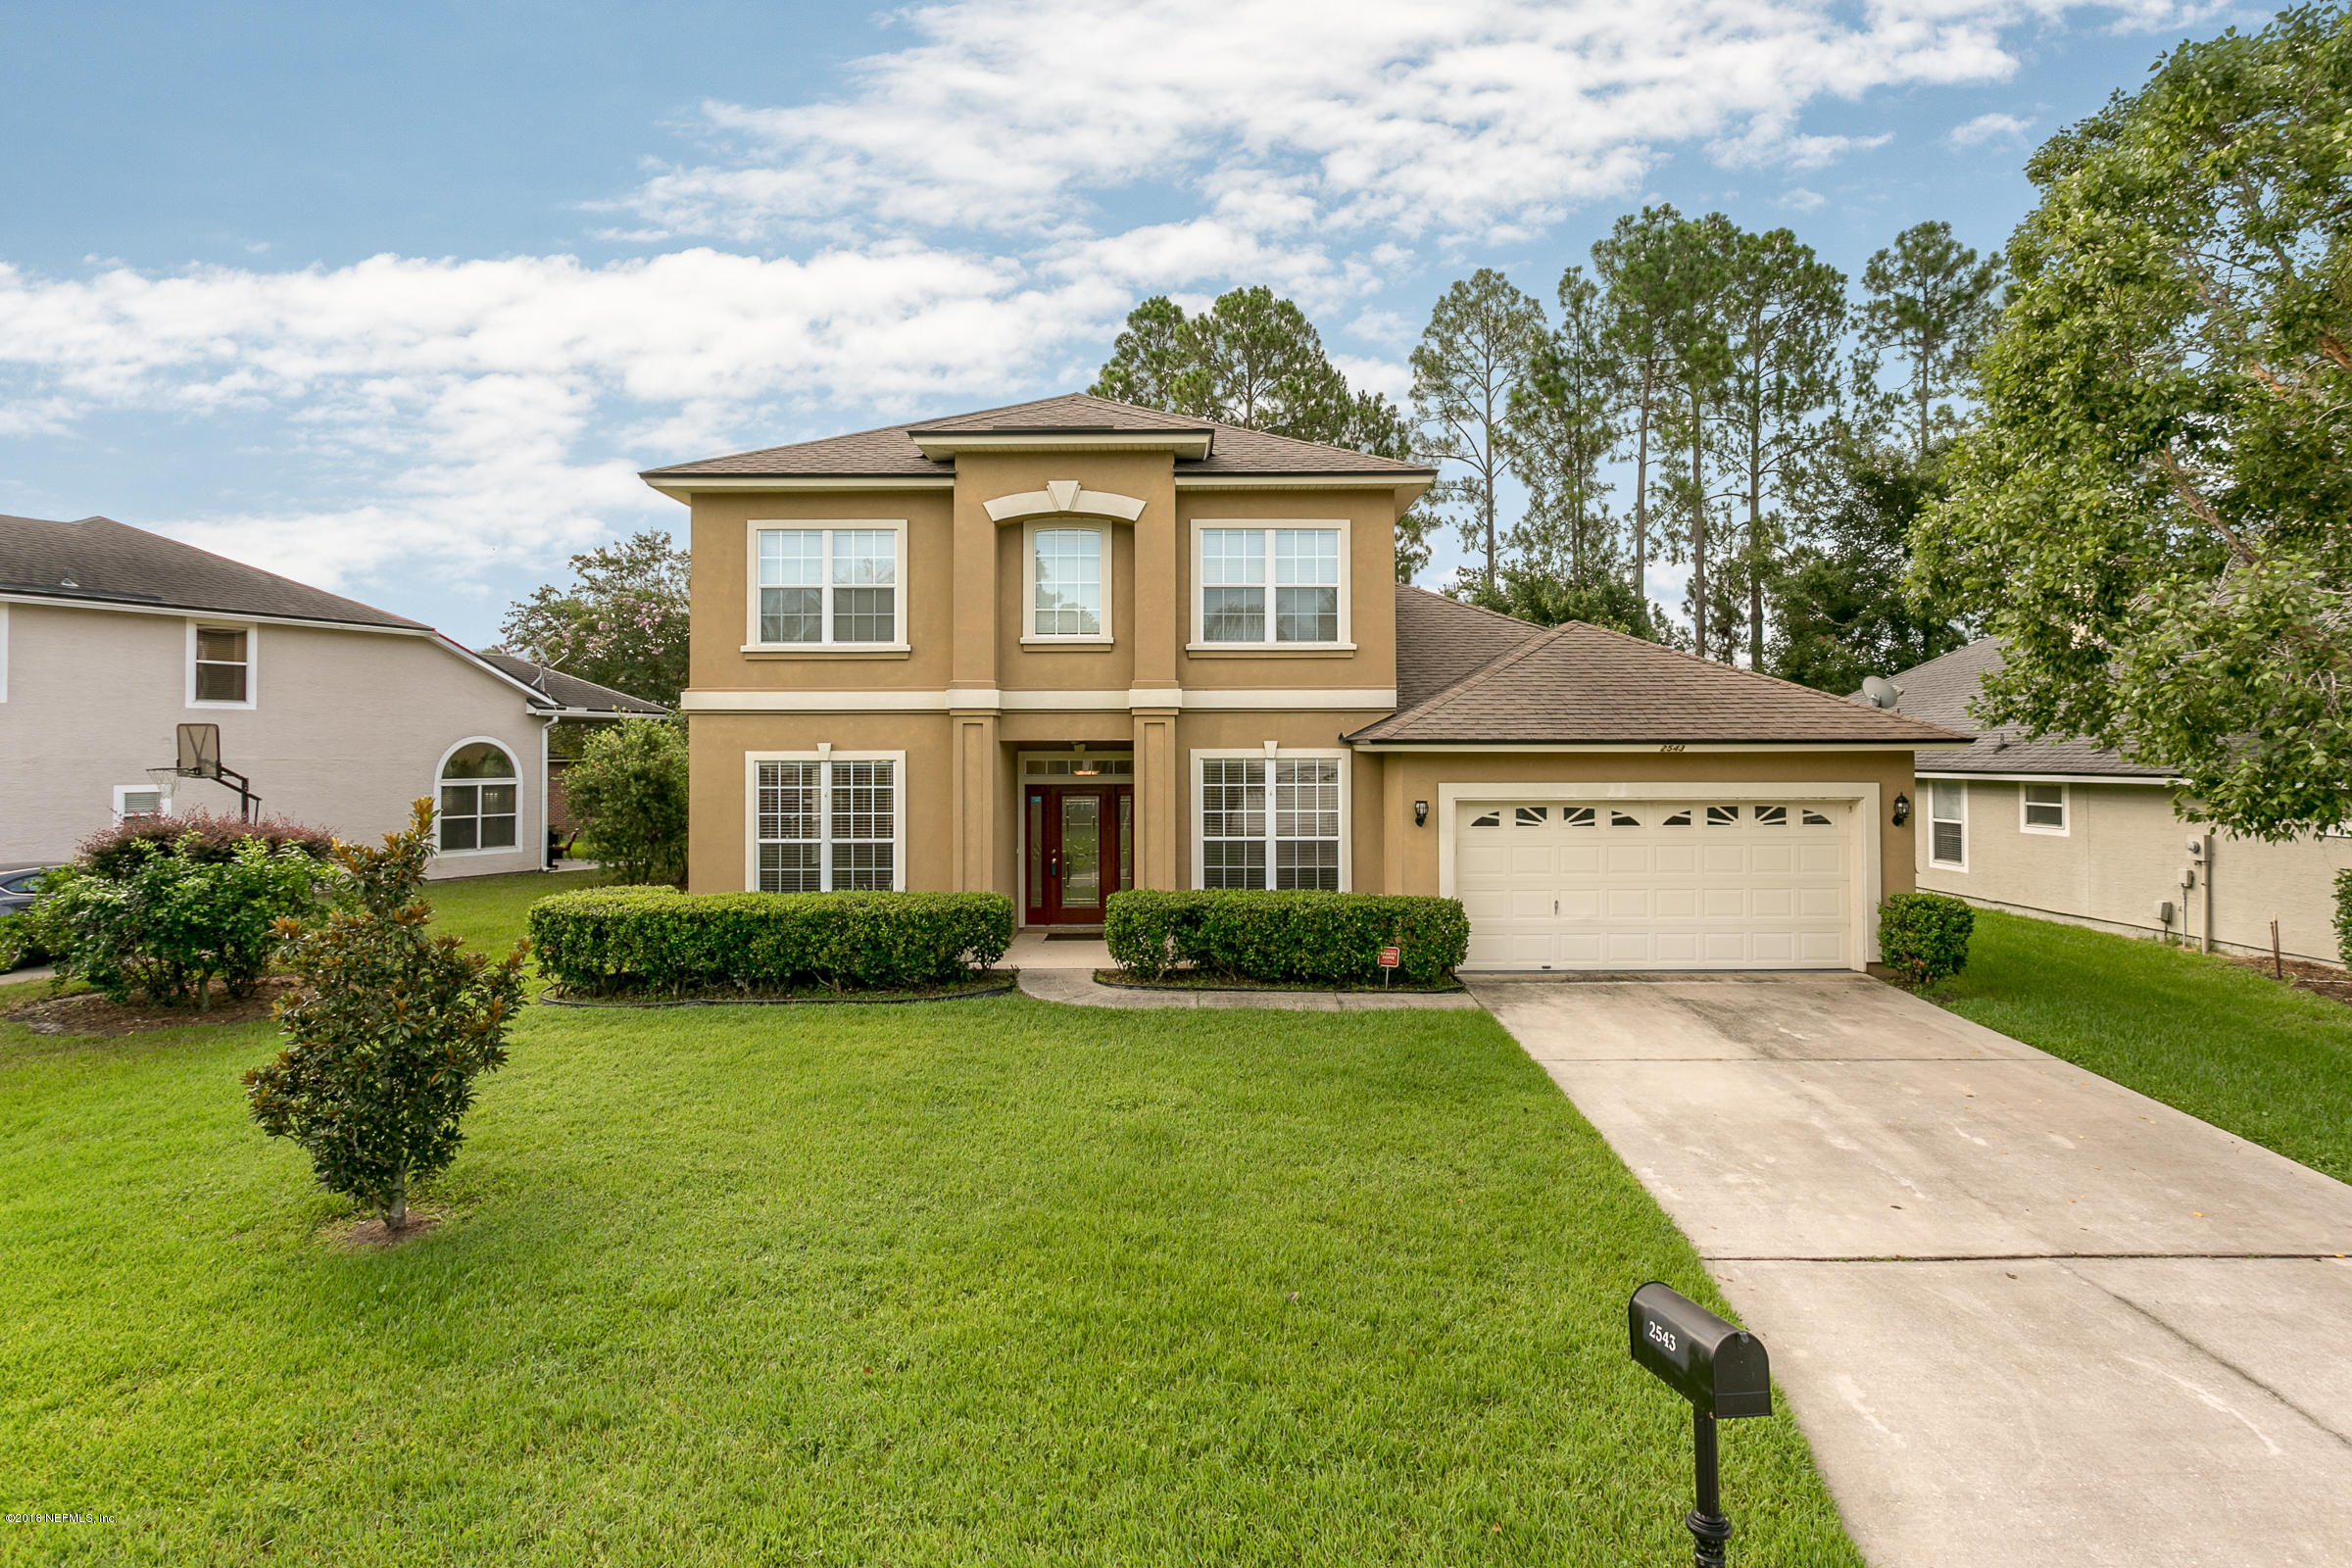 2543 WILLOW CREEK, FLEMING ISLAND, FLORIDA 32003, 5 Bedrooms Bedrooms, ,3 BathroomsBathrooms,Residential - single family,For sale,WILLOW CREEK,960785